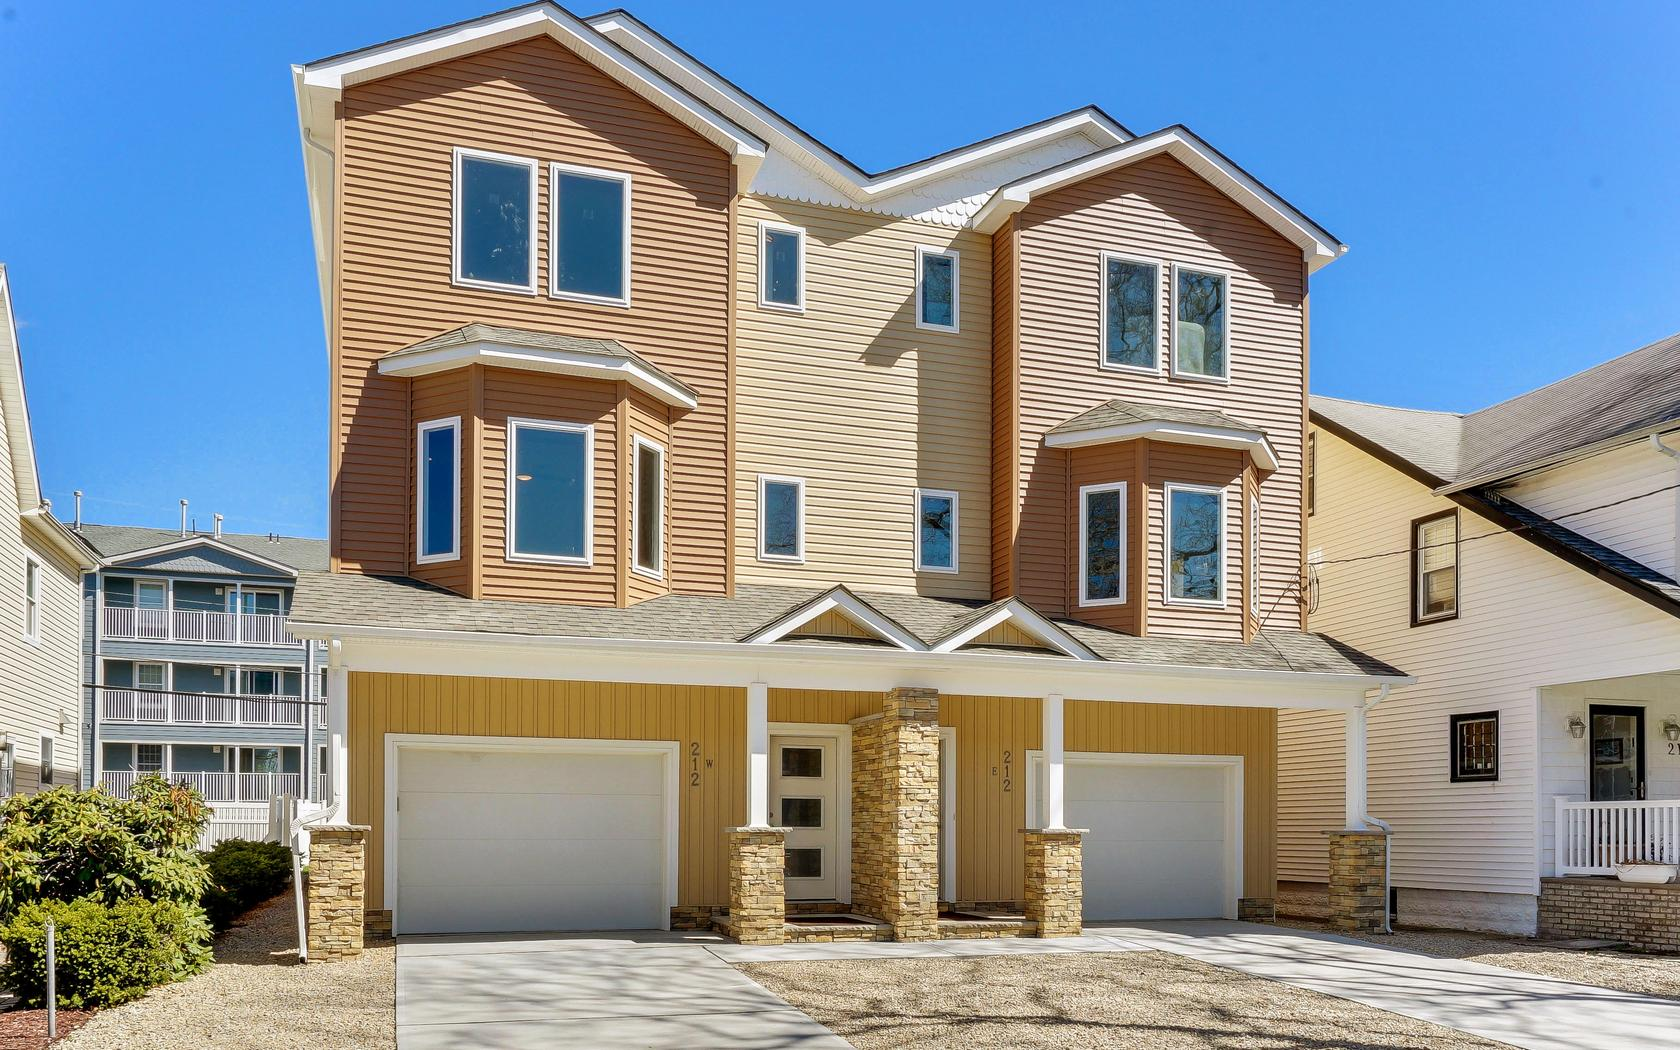 Townhouse for Sale at Townhouse Near Beach 212 McCabe Ave West Bradley Beach, New Jersey 07720 United States